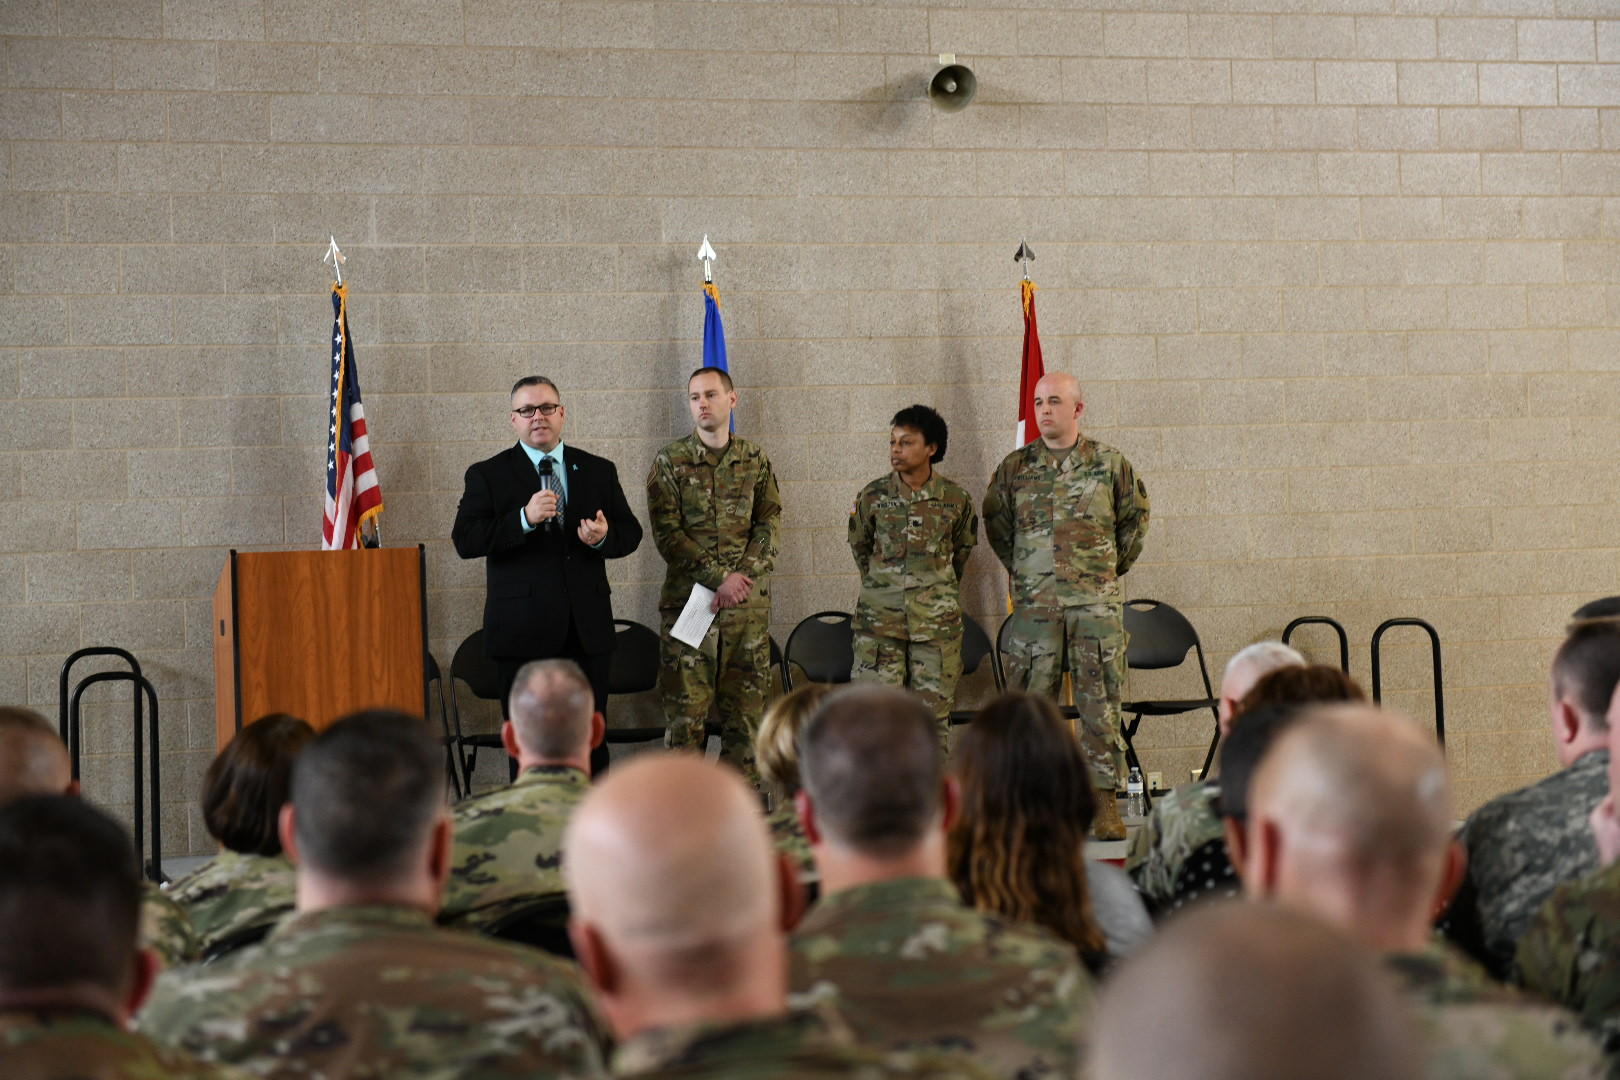 From right to left, the Minnesota National Guard's Sexual Assault Response Coordinator, Minnesota National Guard's State Judge Advocate, representative from the National Guard Bureau Office of Complex Investigation, and a representative from the National Guard Bureau Special Victims' Counsel, address approximately 500 Soldiers, Airmen and civilian employees during a two-hour sexual assault stand-down on April 25, 2019, at an armory in Arden Hills, Minnesota, as a part of Sexual Assault Awareness Month. This event is the first in an anticipated series of events across the state. (Minnesota National Guard photo by Sgt. Sebastian Nemec)